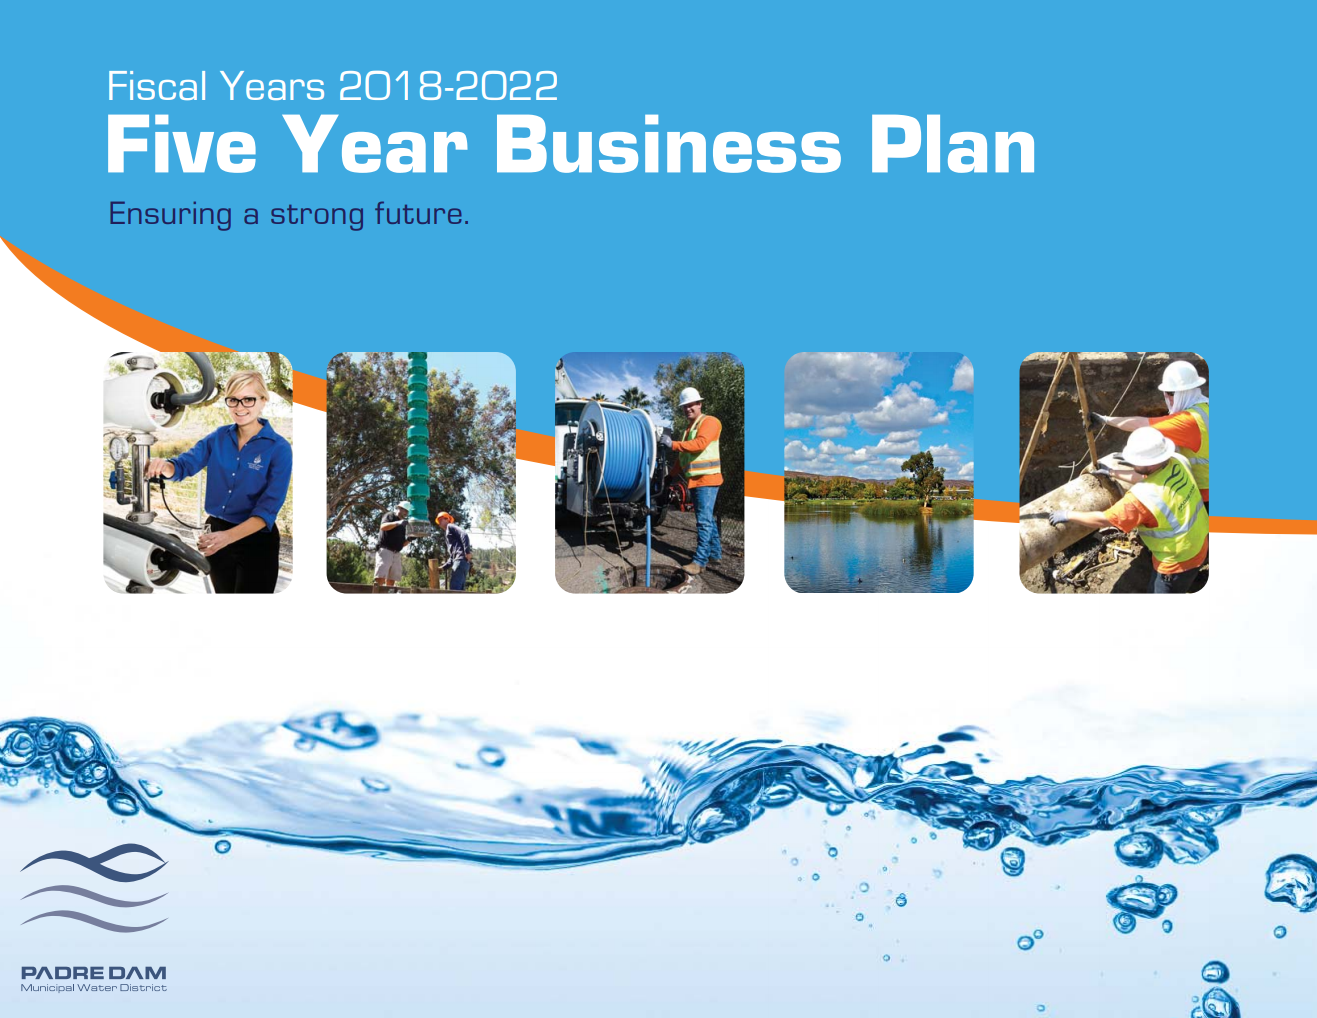 Five Year Business Plan Opens in new window